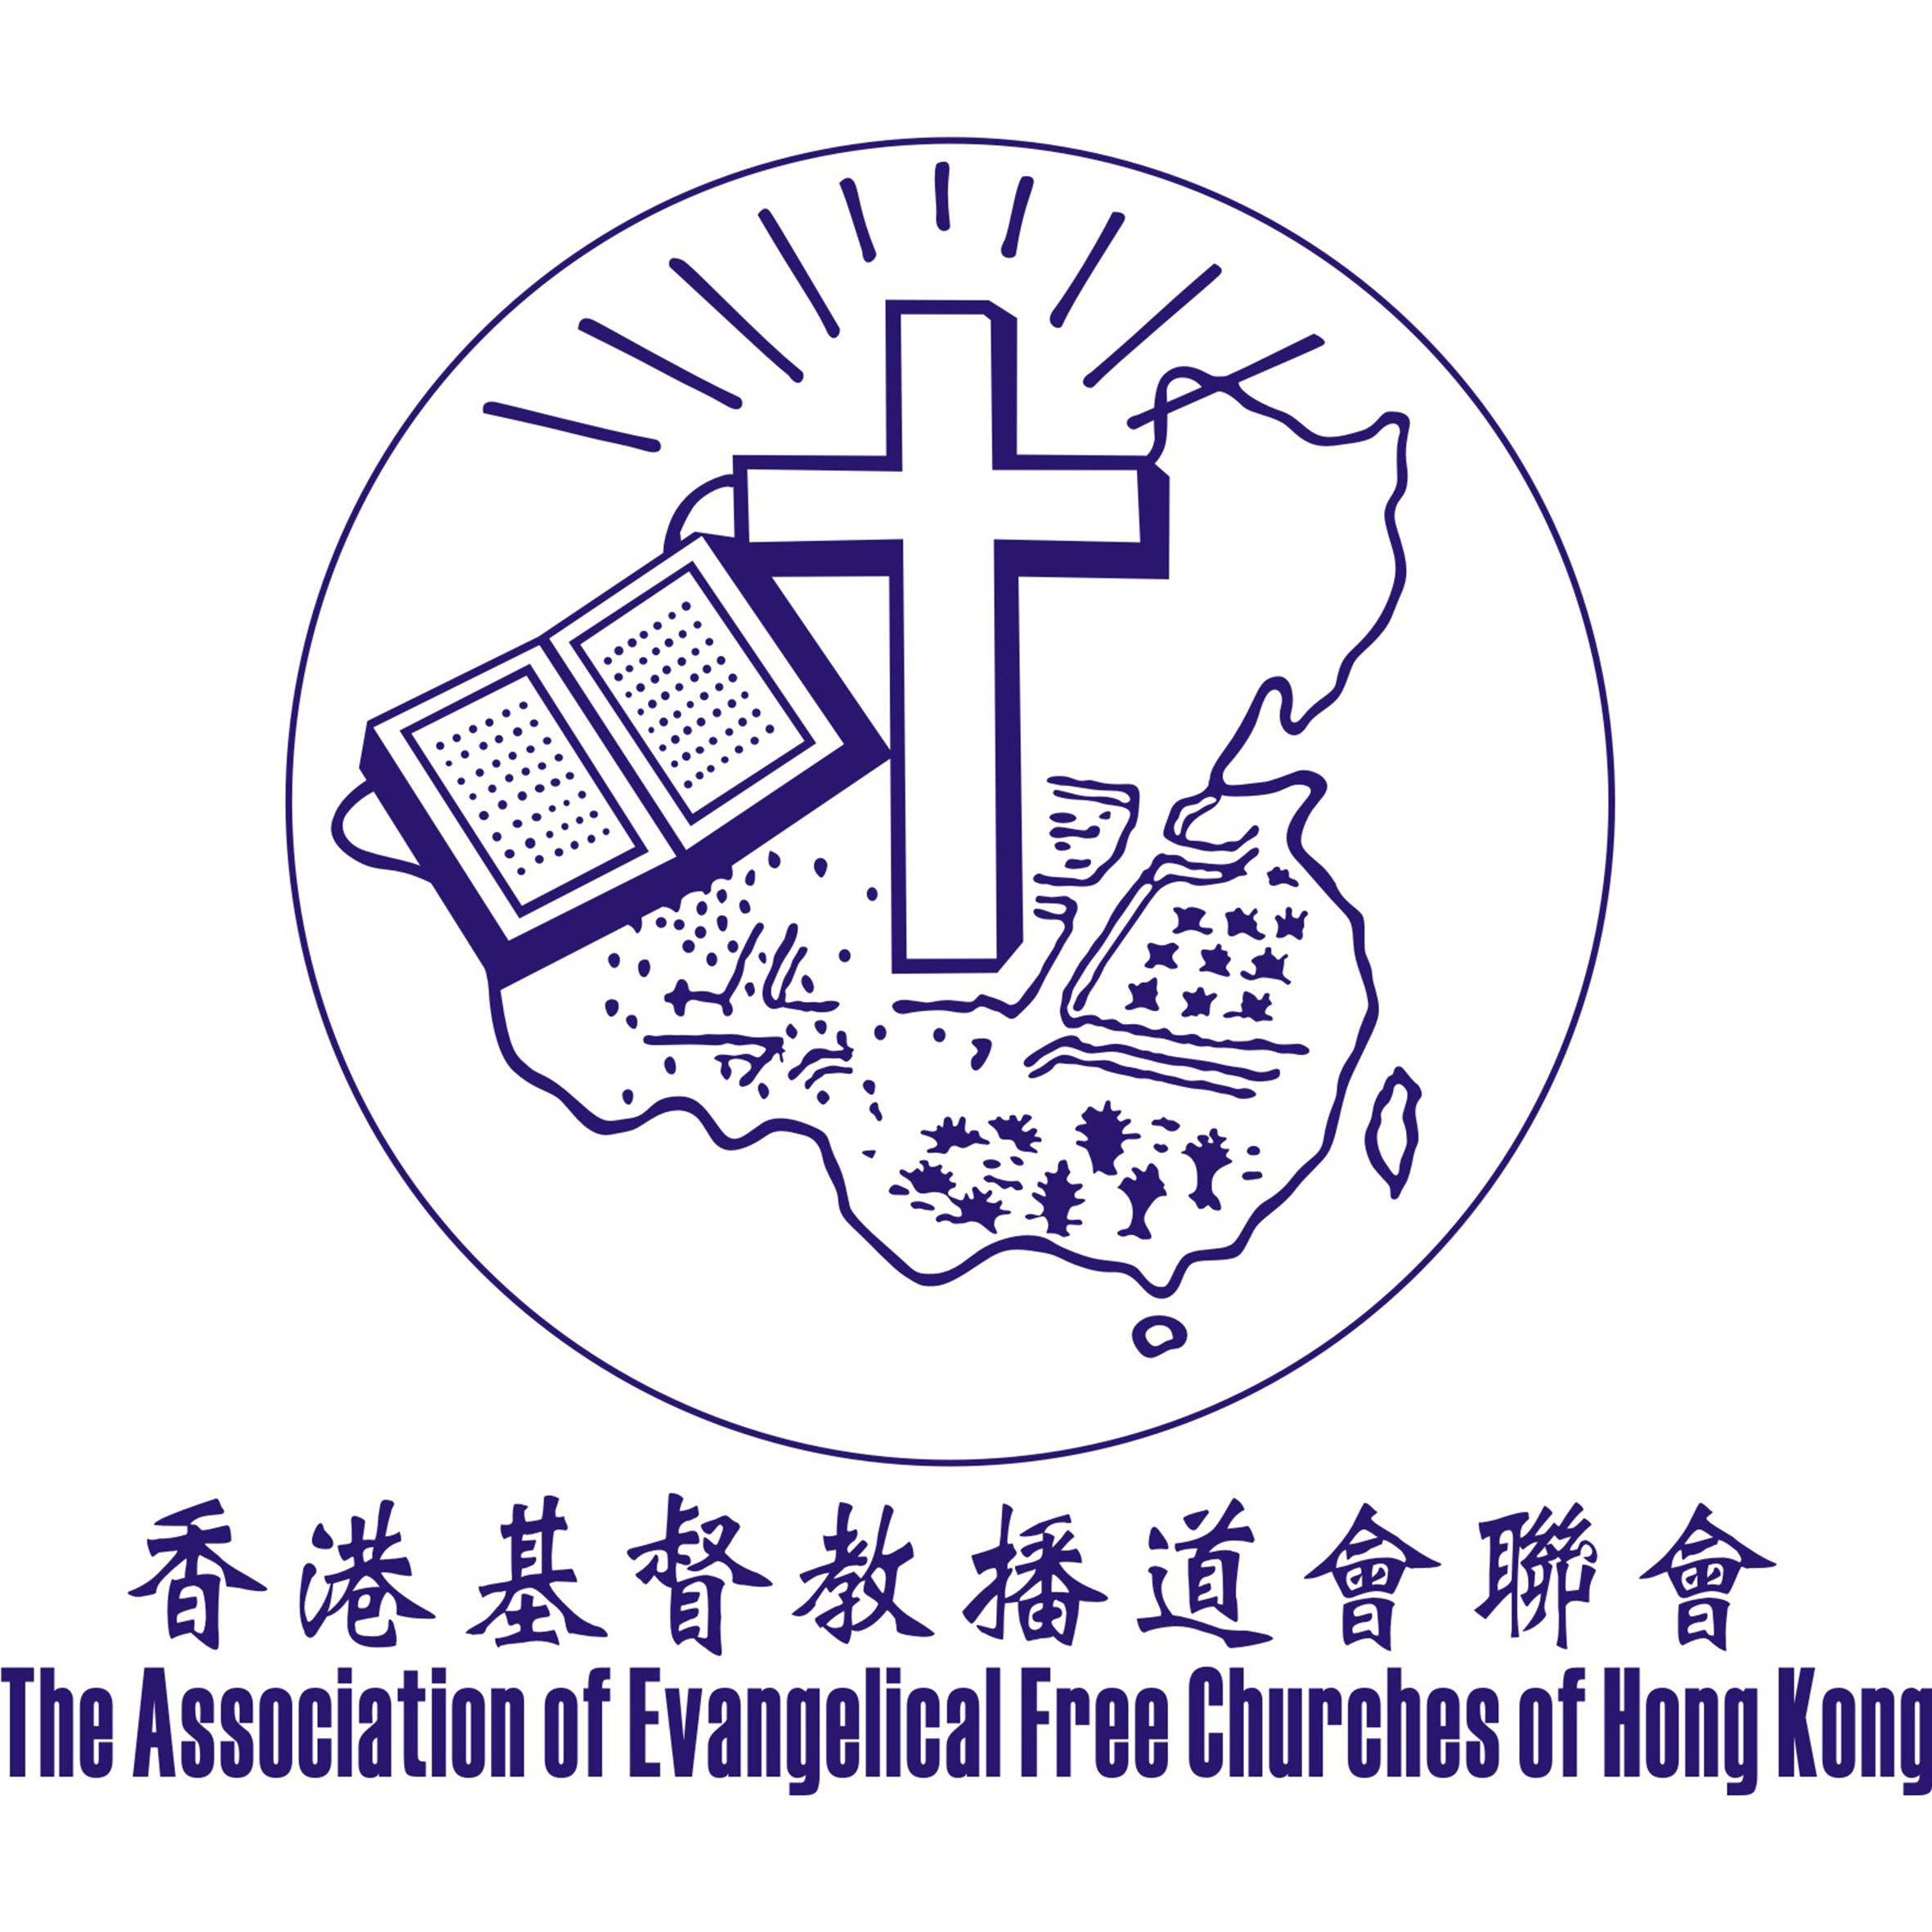 The Association of Evangelical Free Churches of Hong Kong